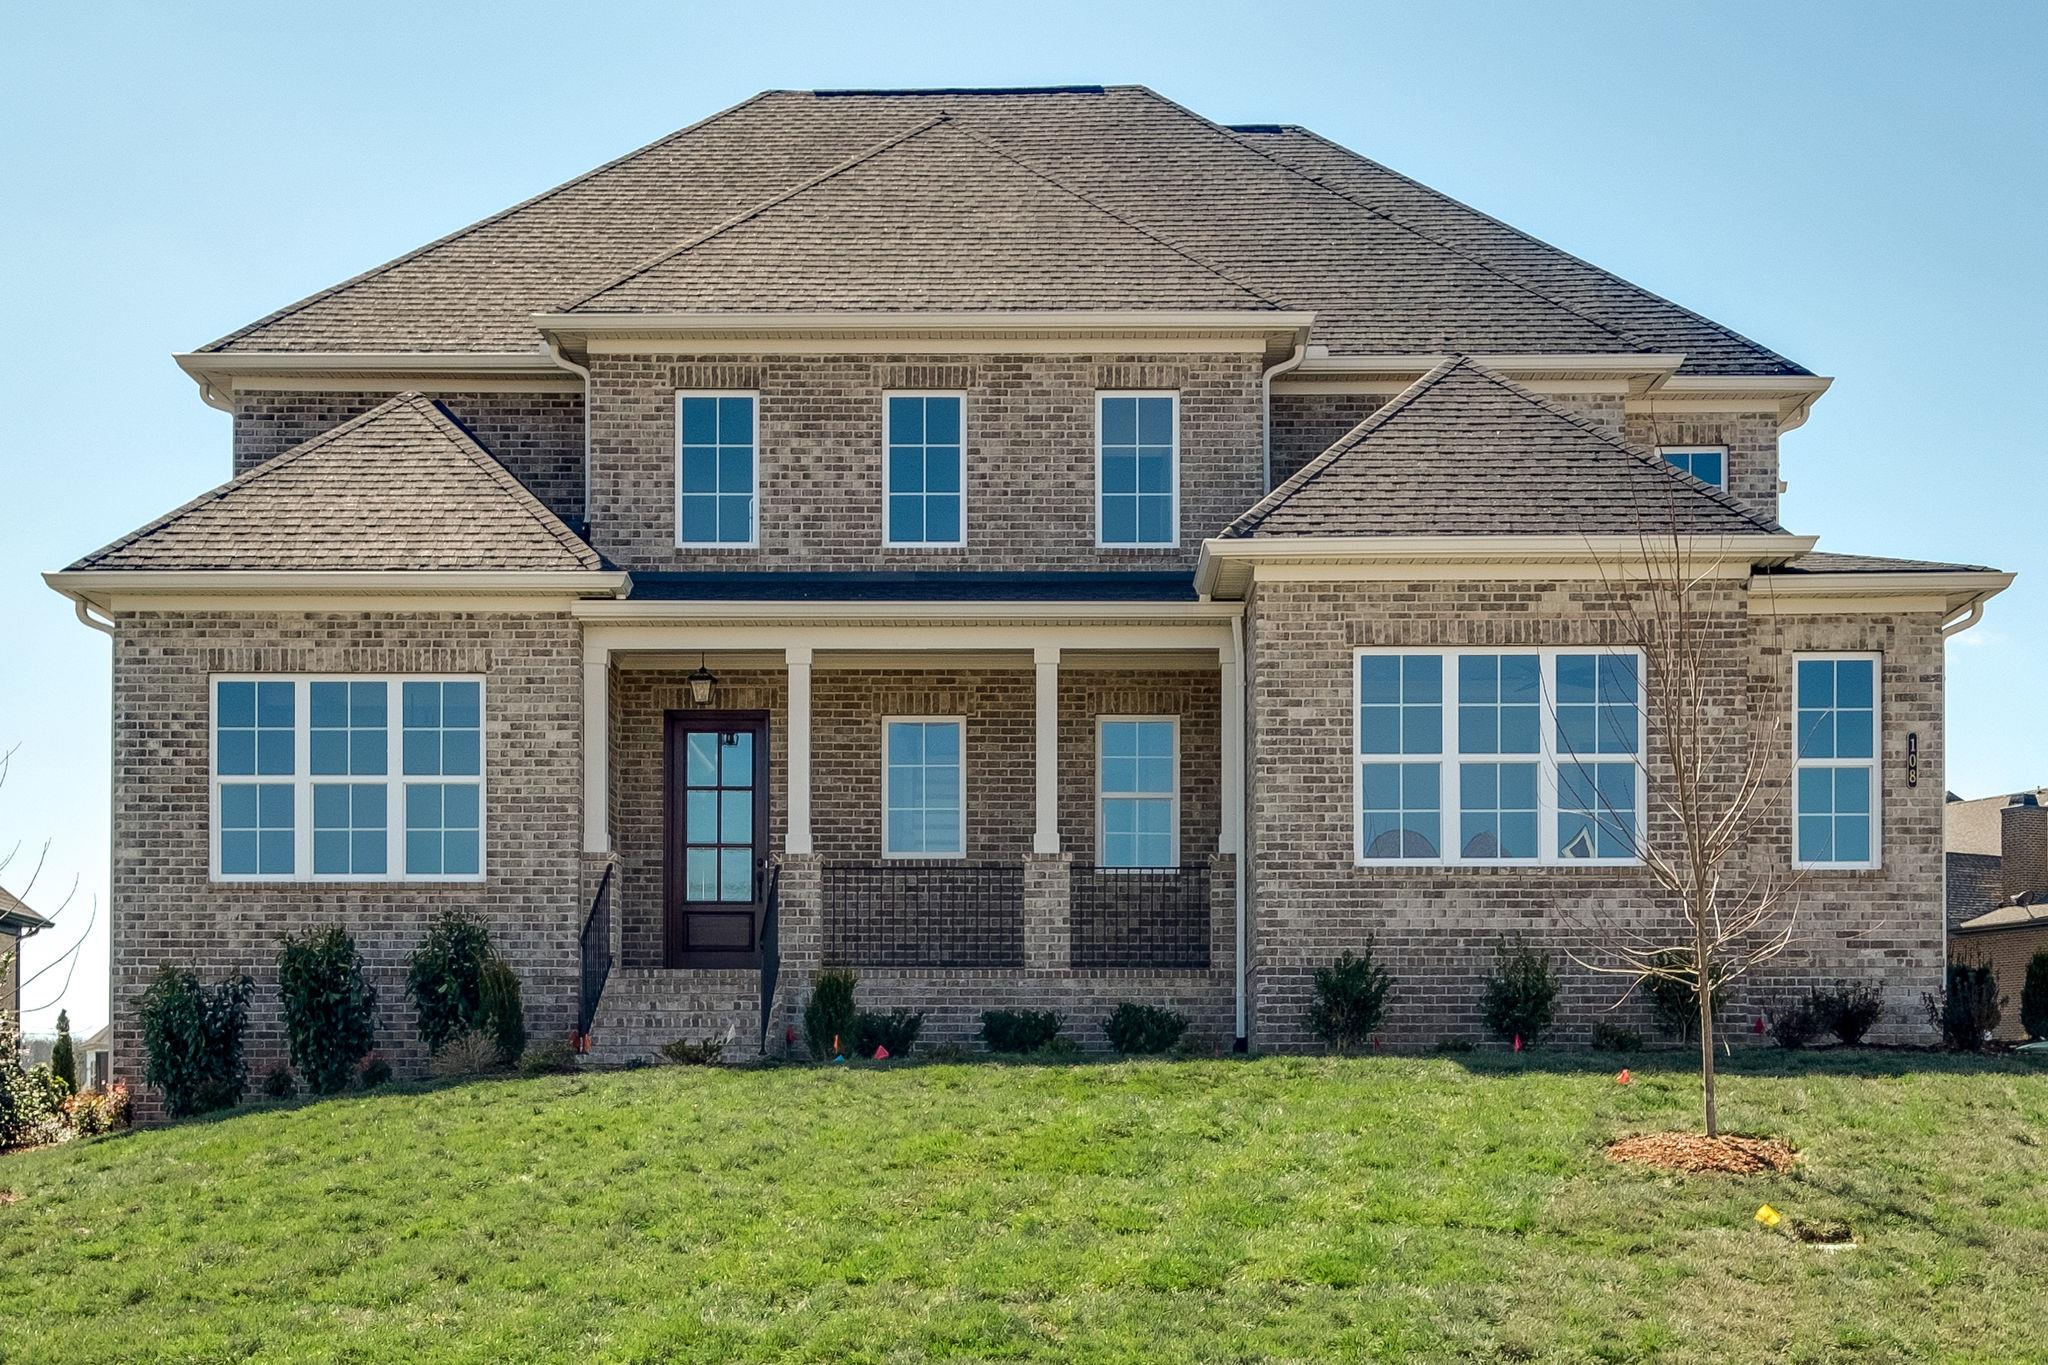 108 Watertown Dr., Lot 1012, Nolensville, Tennessee